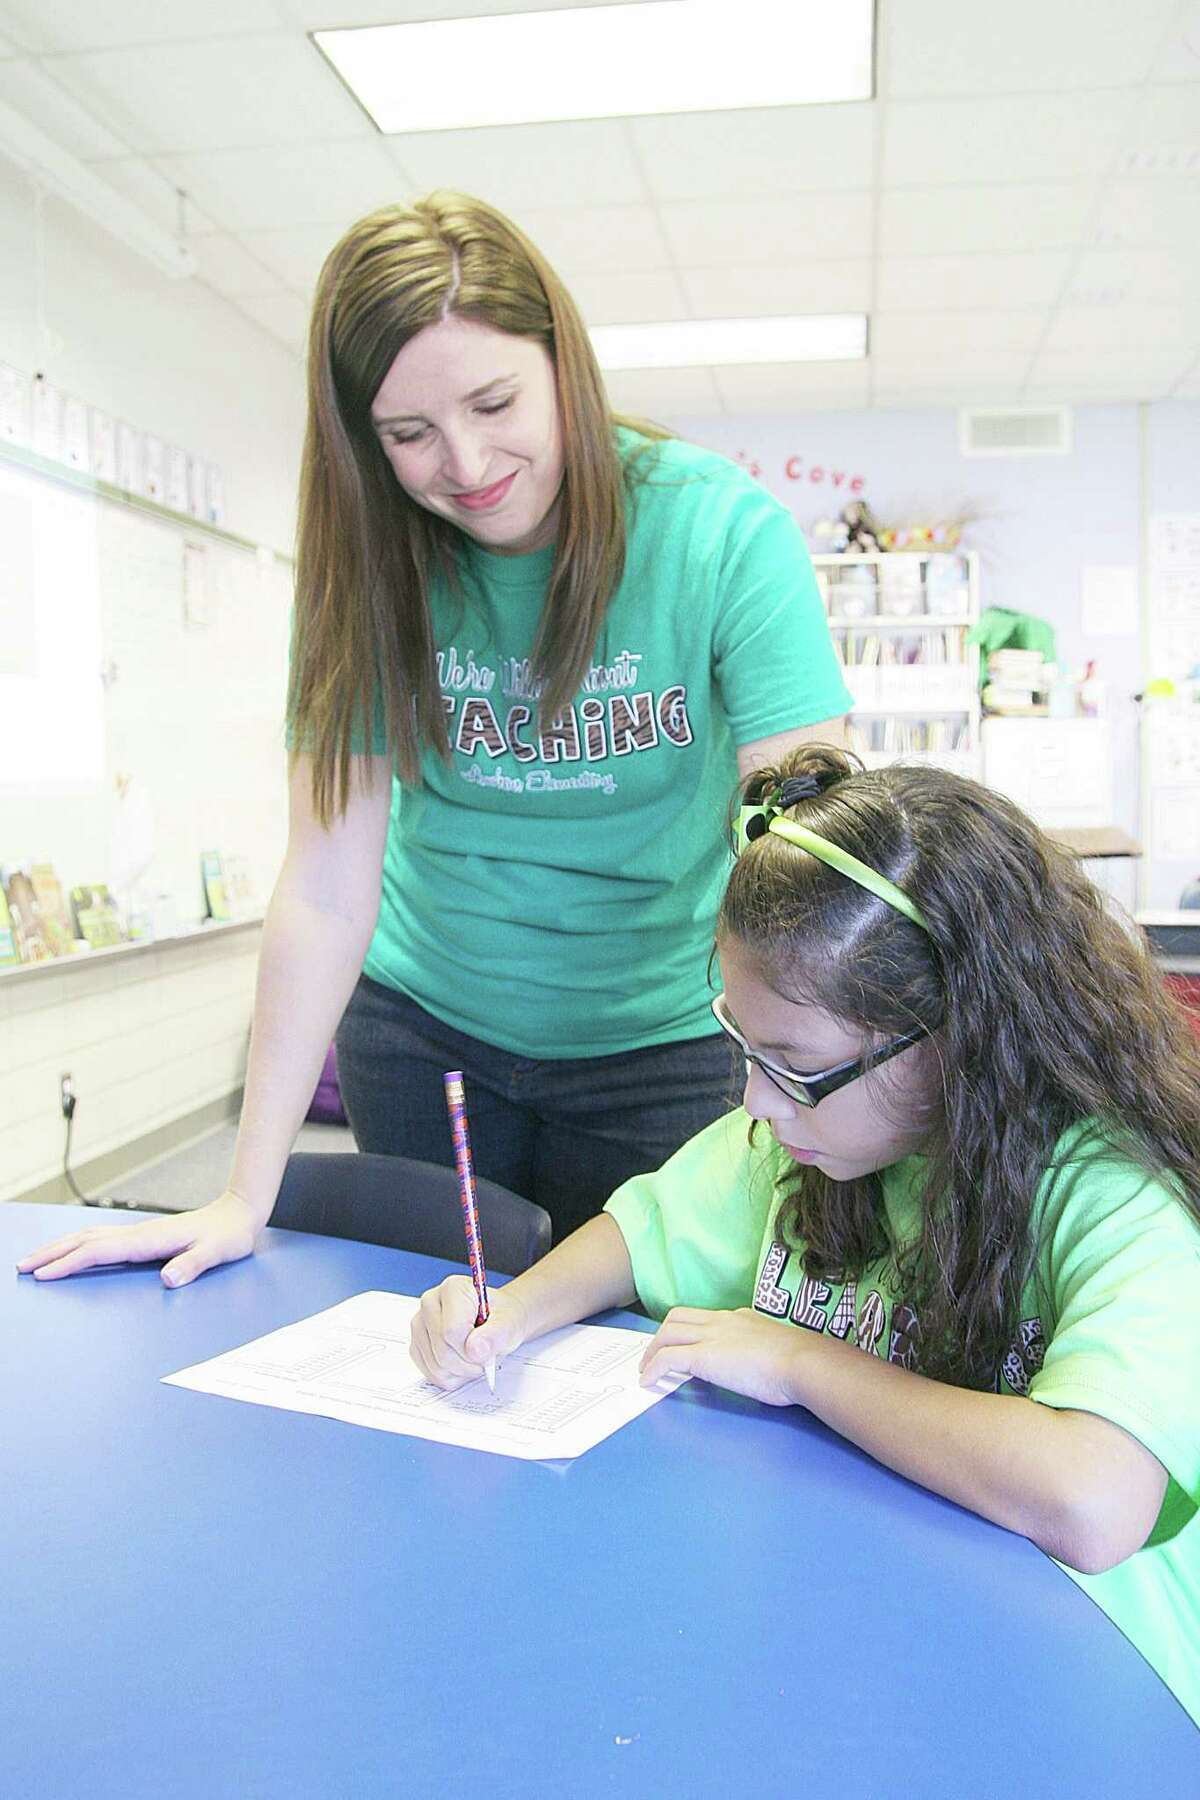 Fourth-grade teacher Katie Strong helps Mia Quiroga, 10, set academic goals for the school year. Fourth-grade teacher Katie Strong helps Mia Quiroga, 10, set academic goals for the school year.